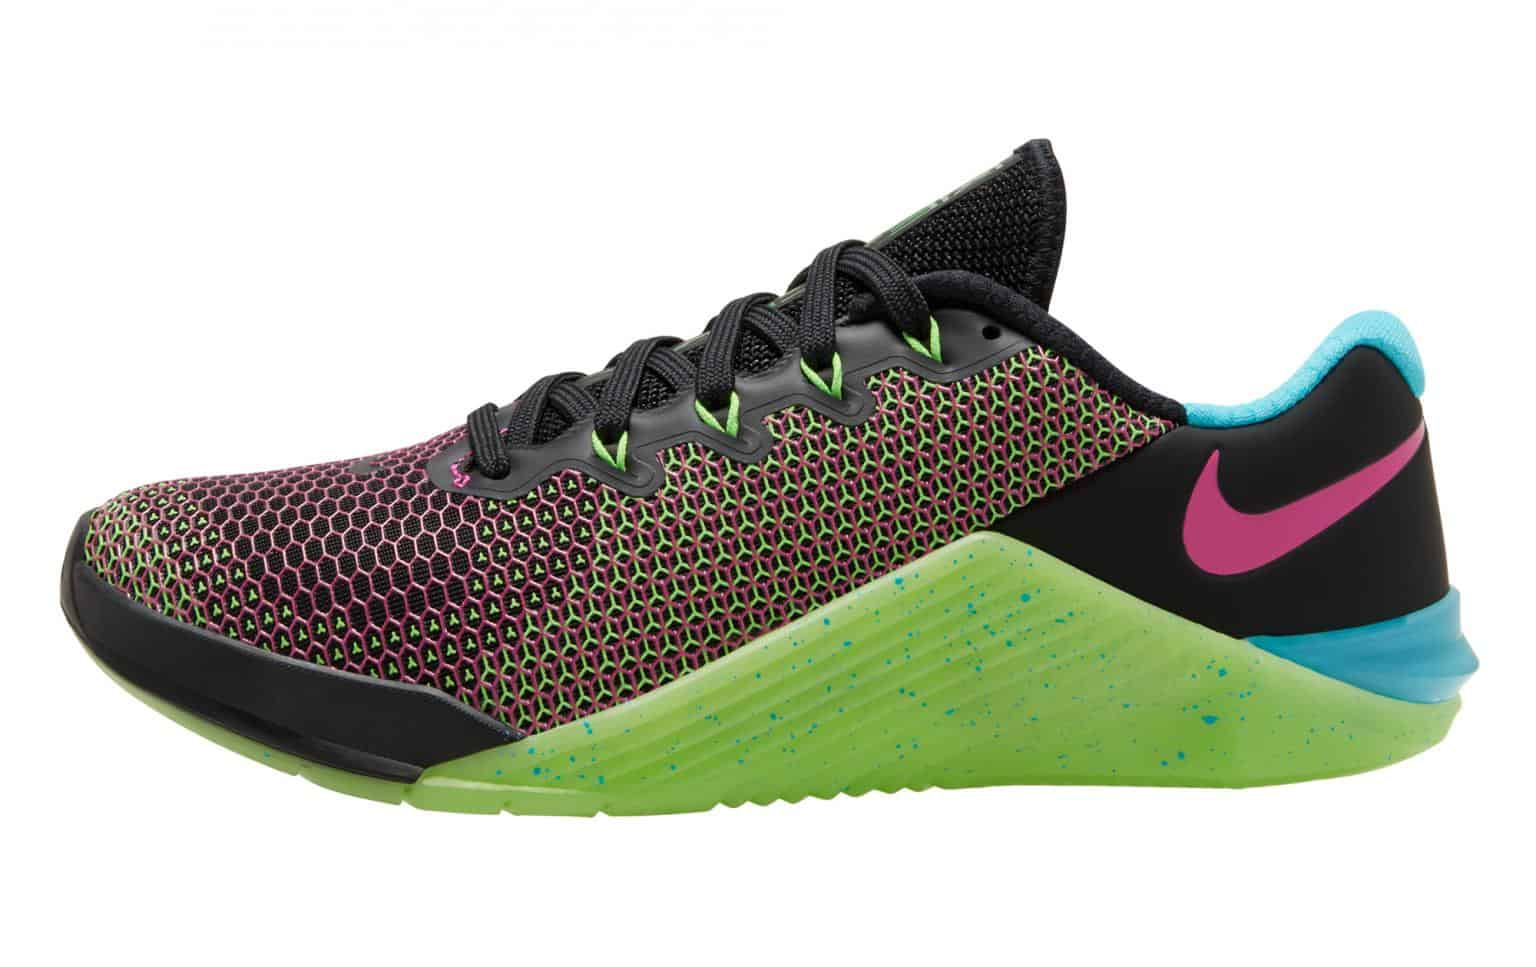 Nike Metcon 5 AMP - New Colorway for 2020 - Cross Train Clothes